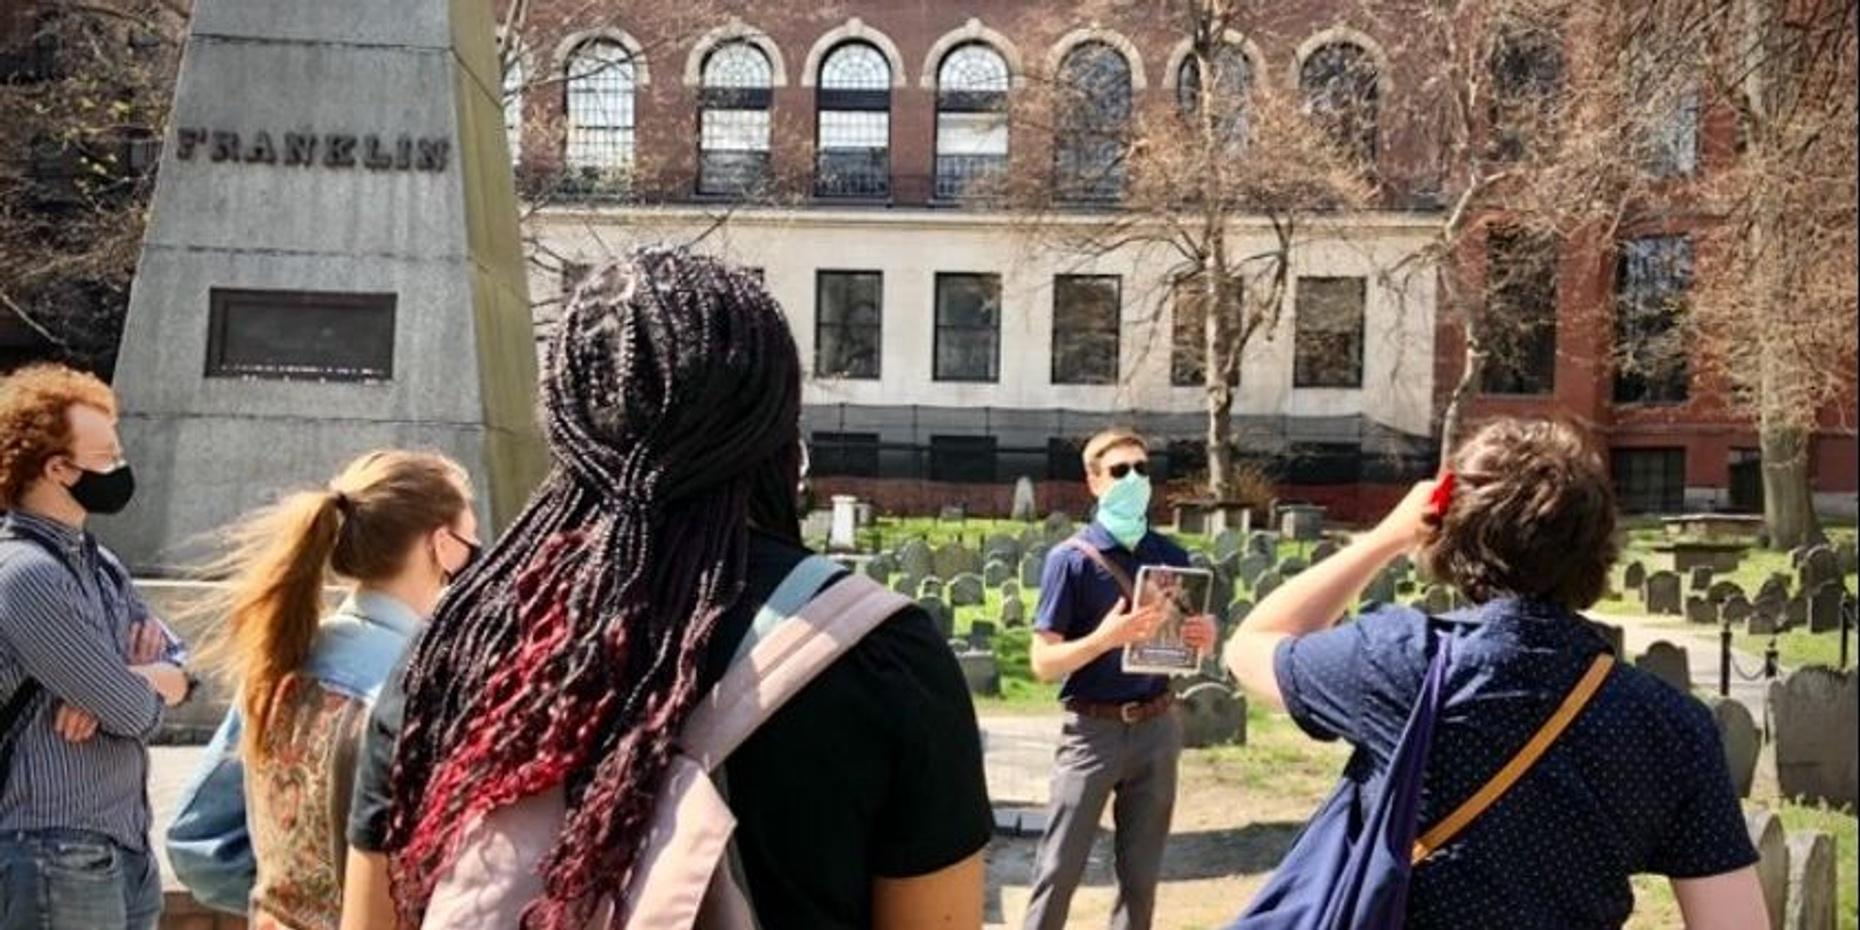 Boston: Midday Tour of Freedom Trail History